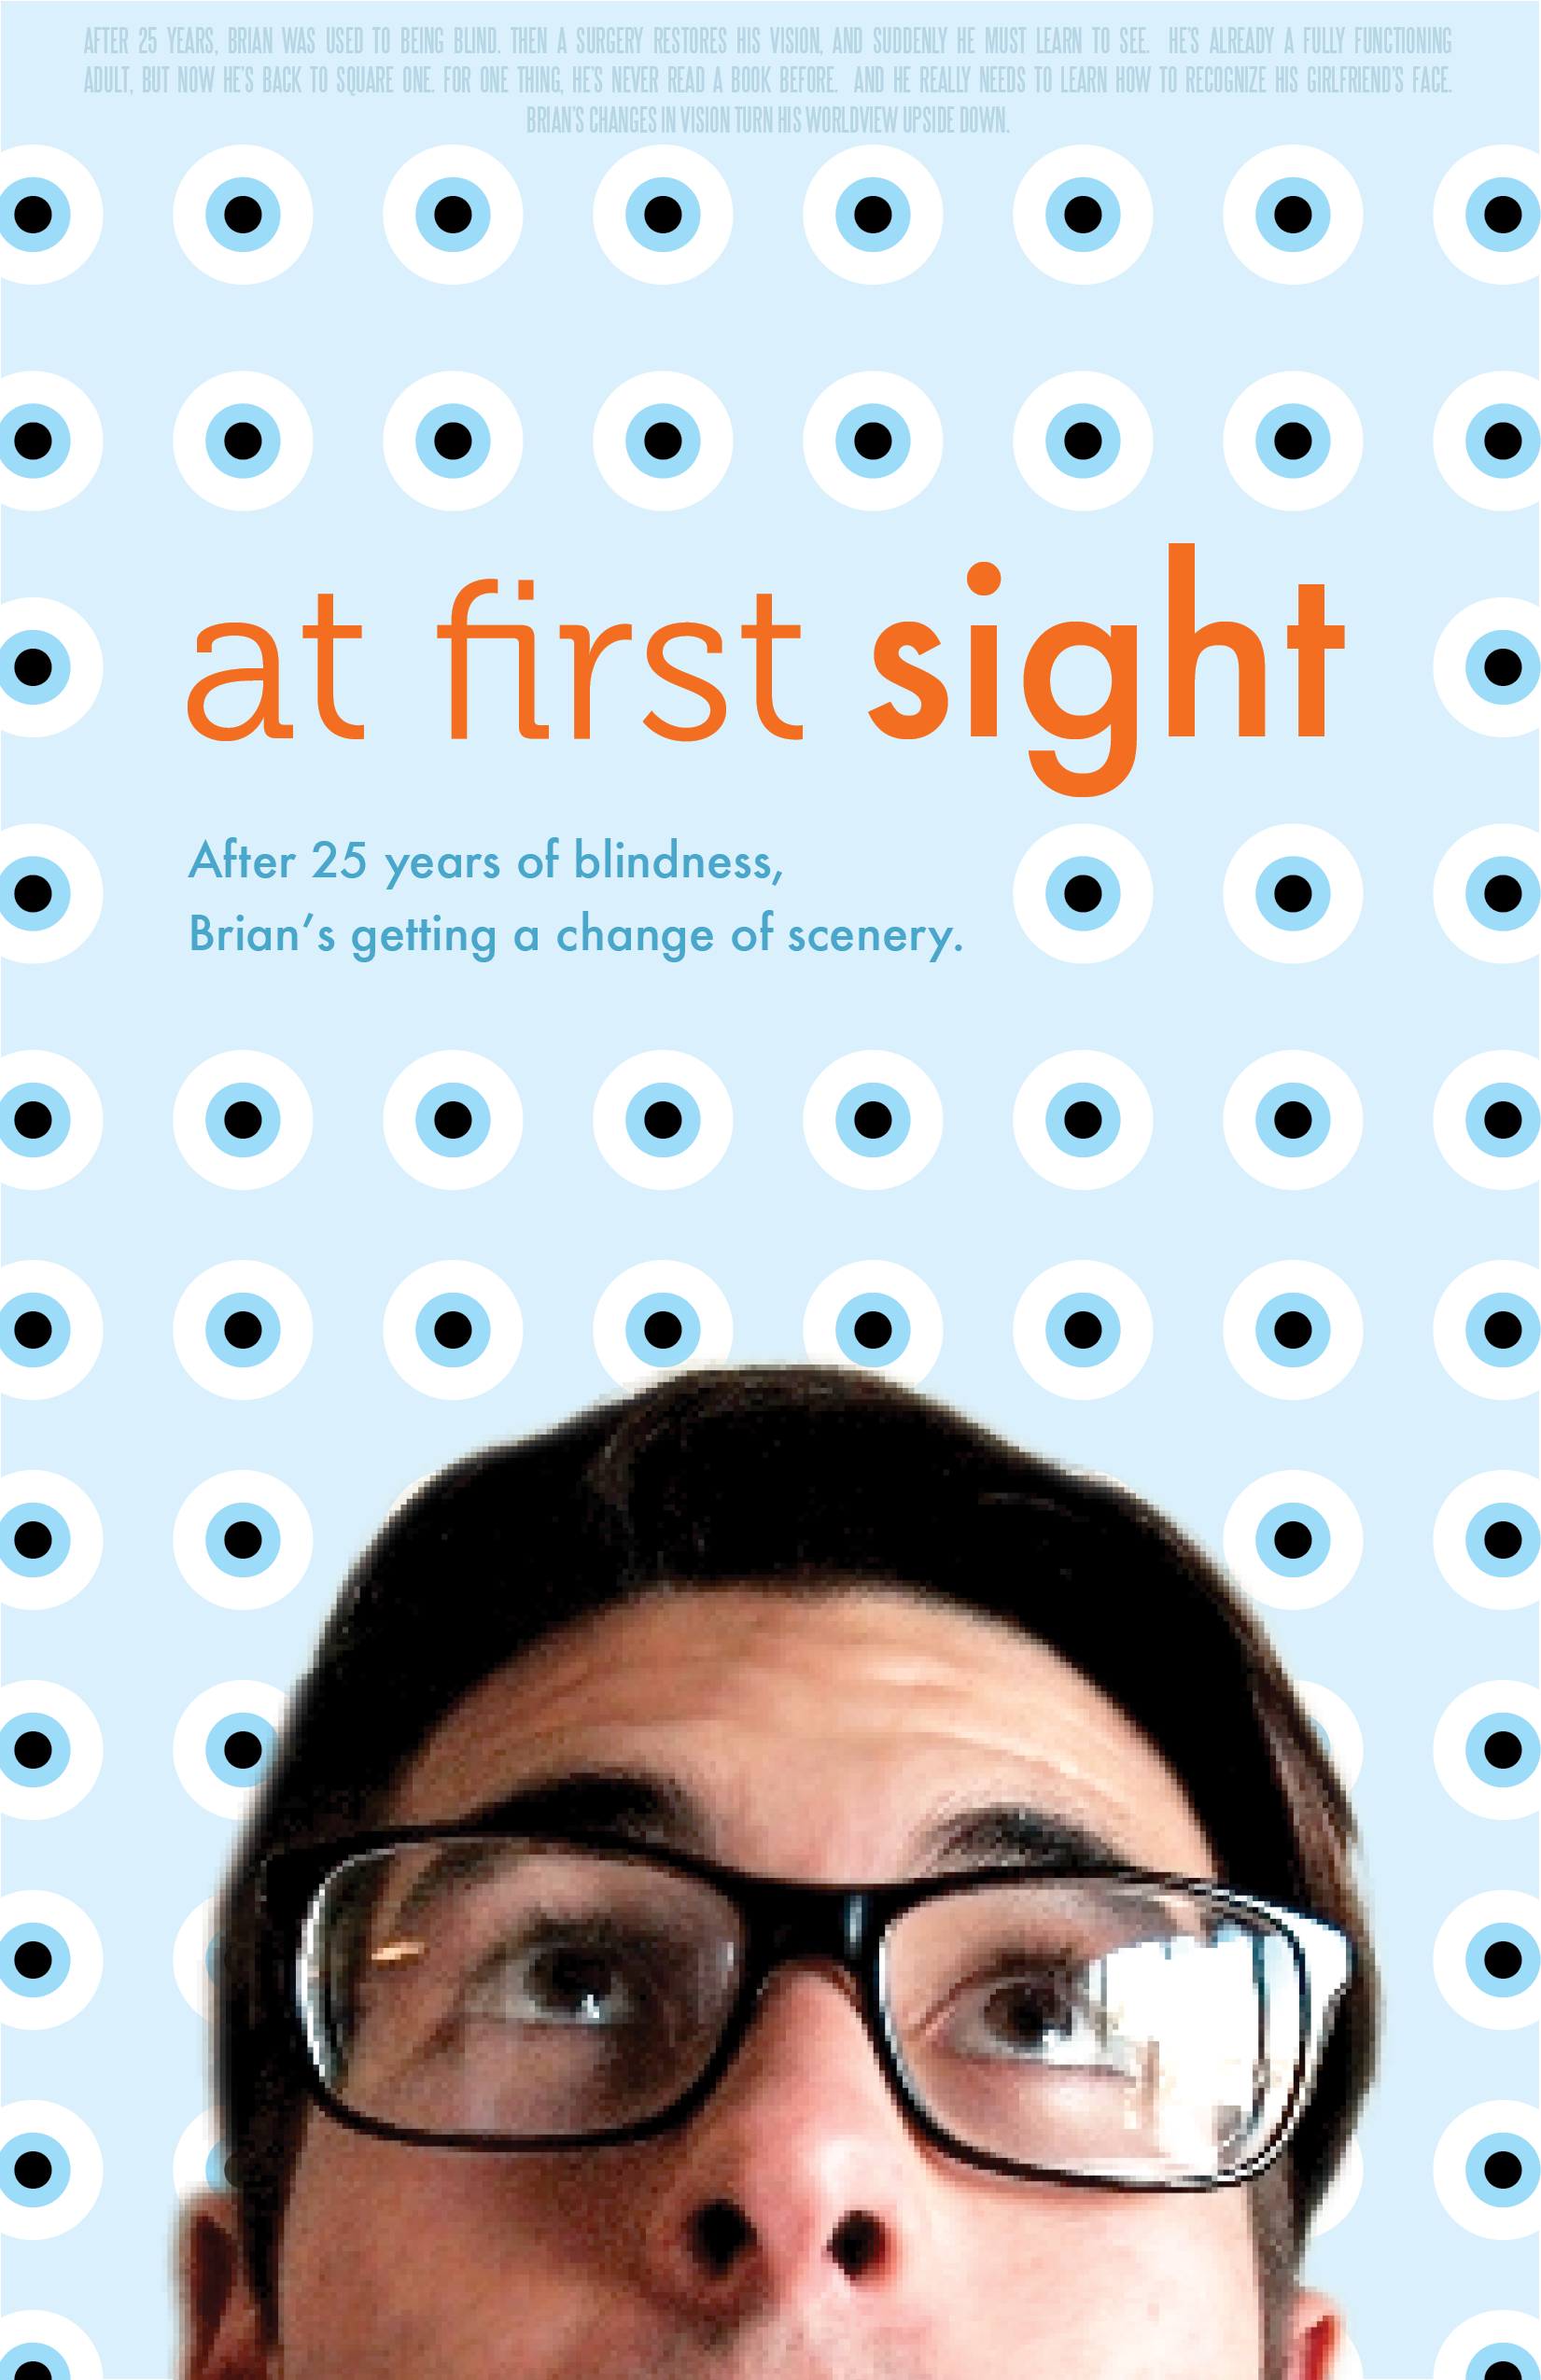 at first sight poster 2 final.png